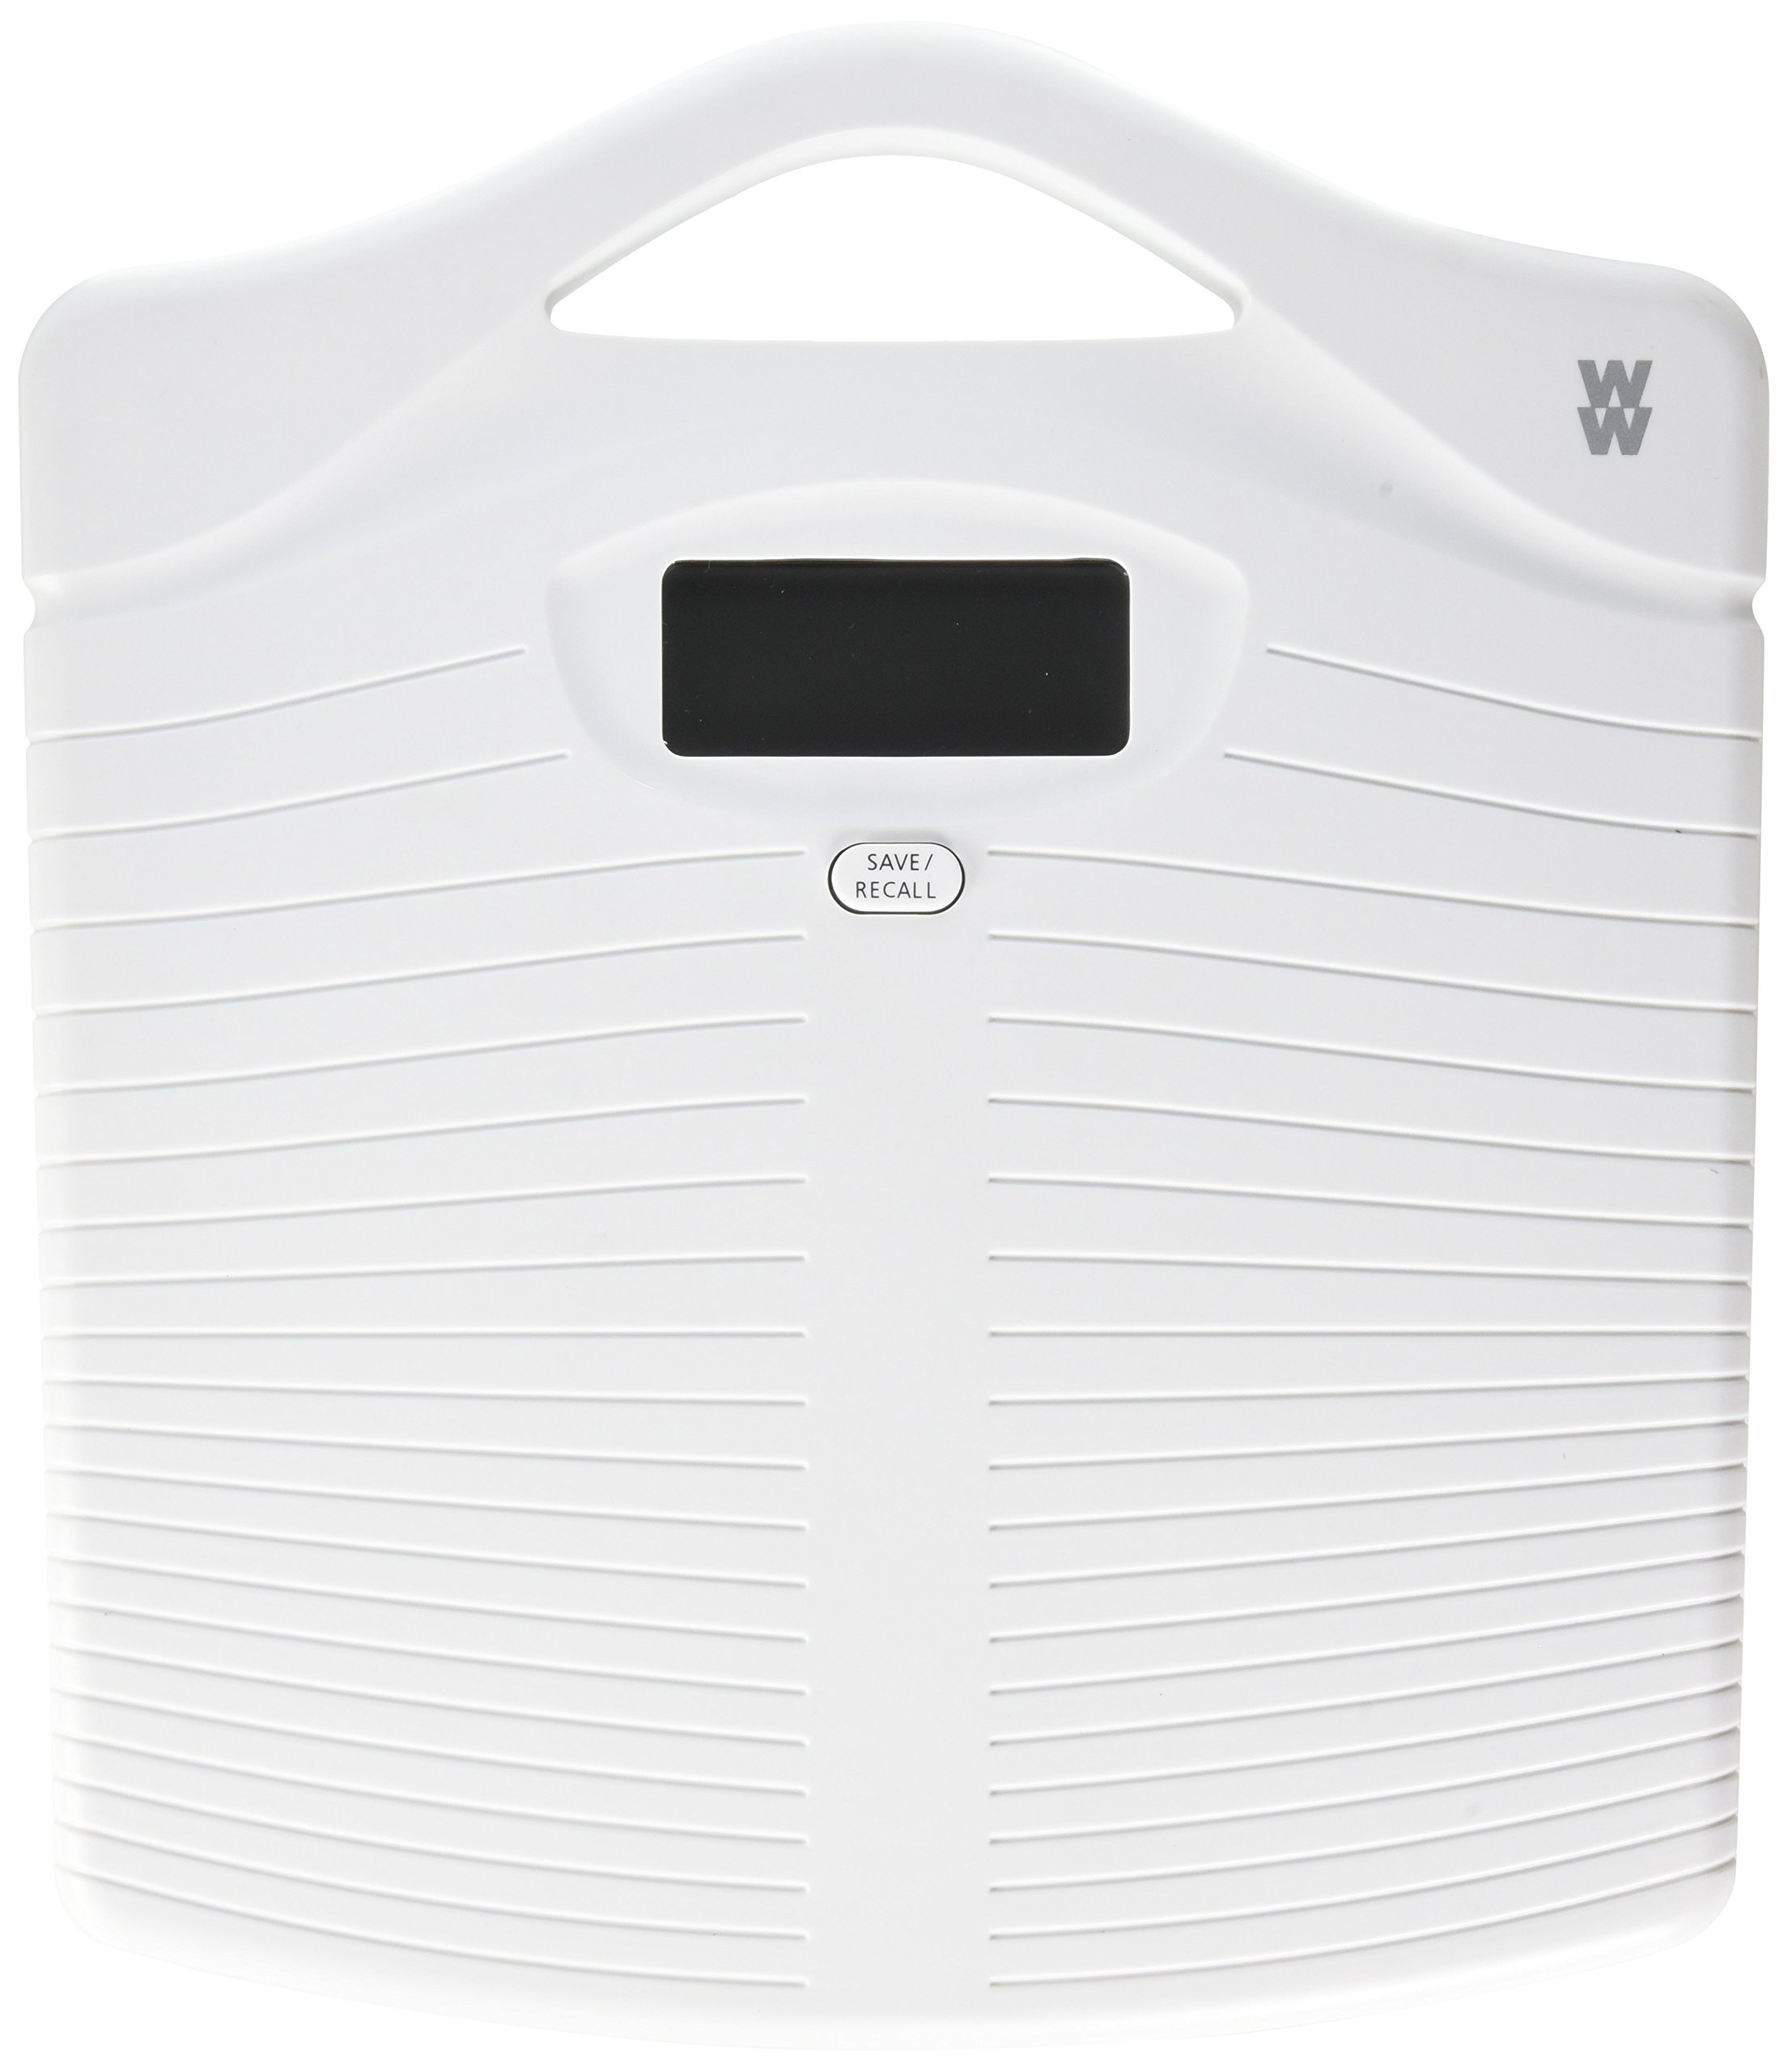 Weight Watchers by Conair Portable Precision Electronic Bathroom Scale with Handle; 330 lb. capacity; Durable Non-Slip Plastic Platform Bath Scale; White